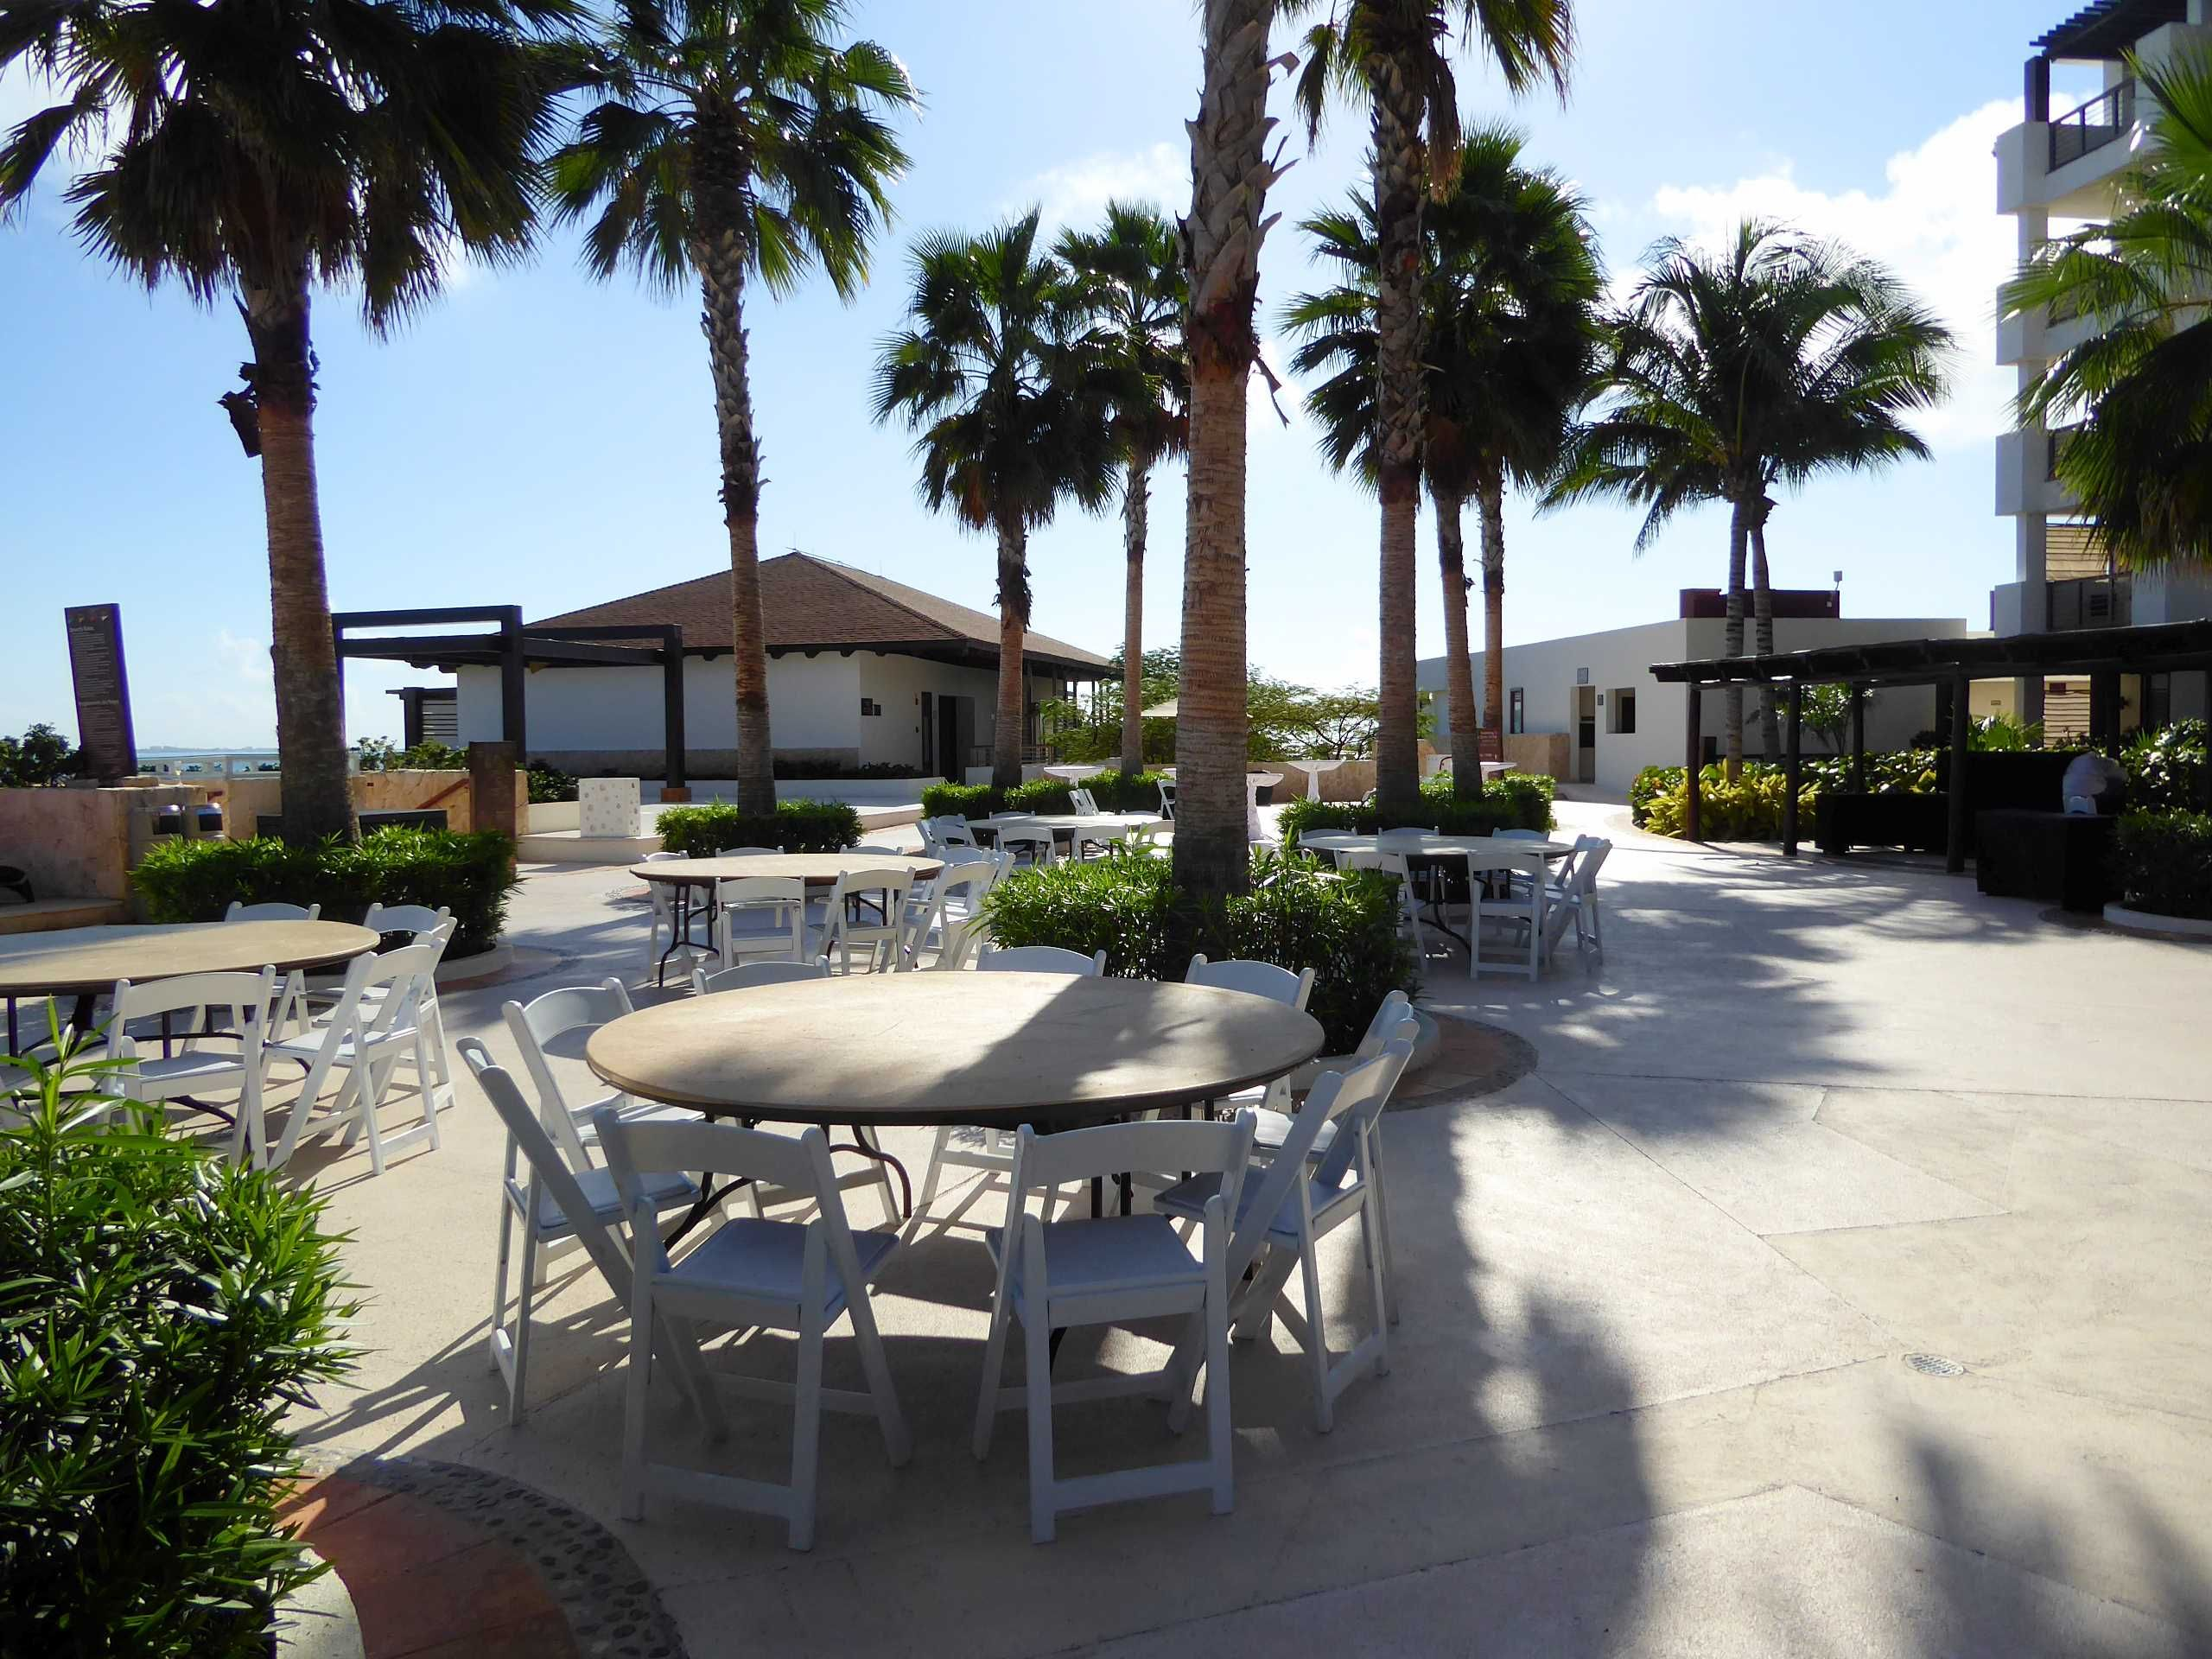 Poolside terrace can be used for hosting wedding